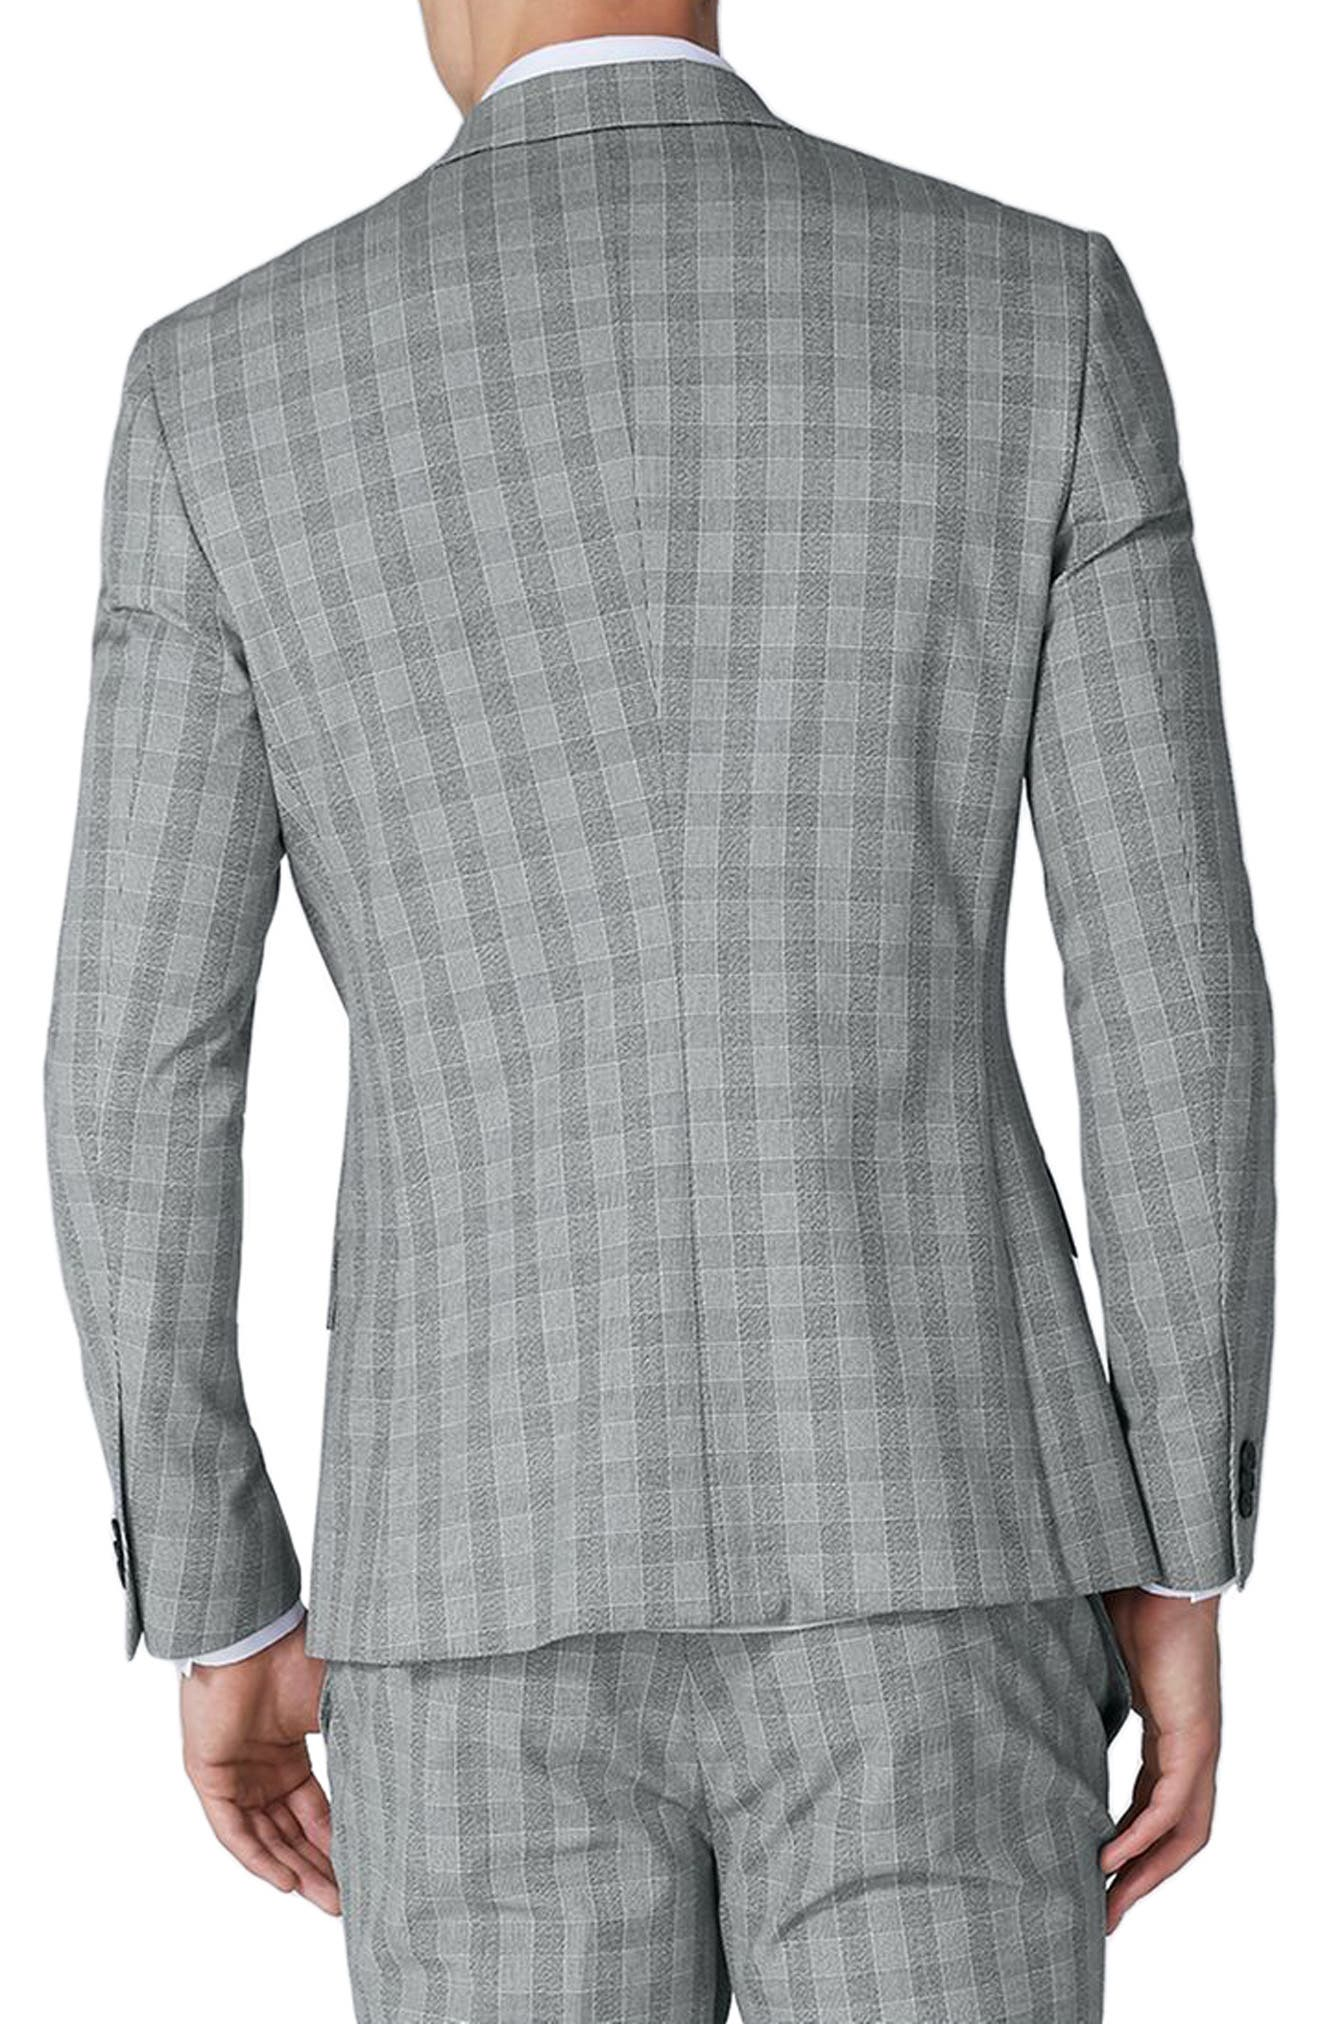 Muscle Fit Check Suit Jacket,                             Alternate thumbnail 2, color,                             020